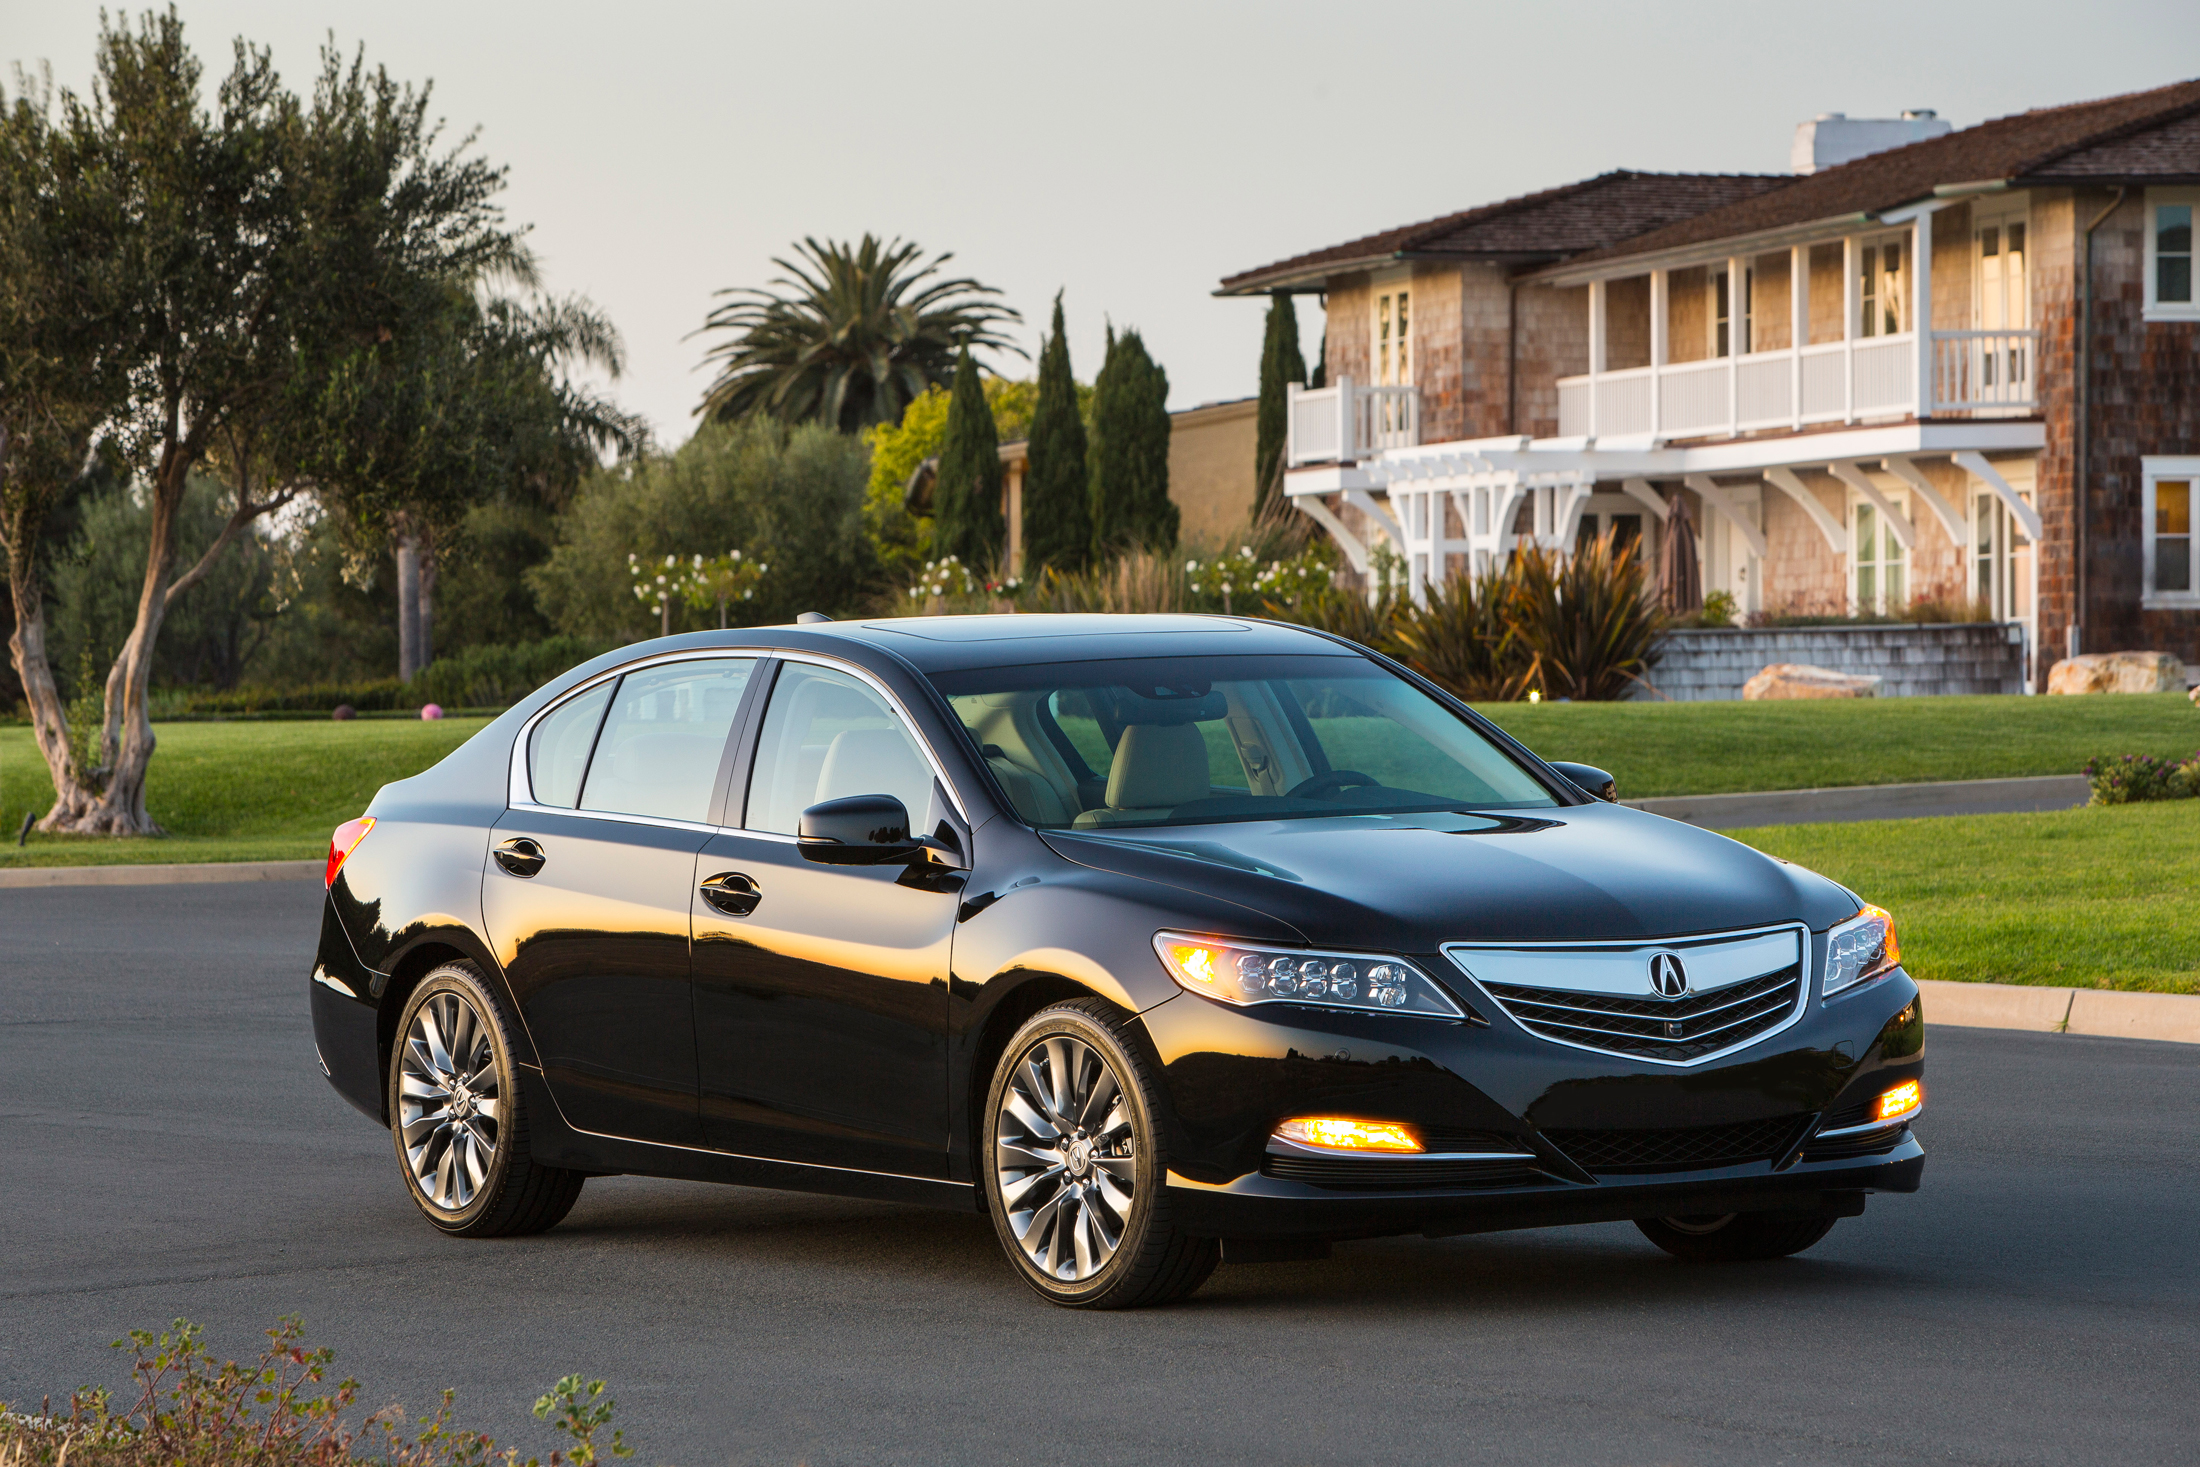 2016 acura rlx safety ratings five stars from nhtsa news. Black Bedroom Furniture Sets. Home Design Ideas